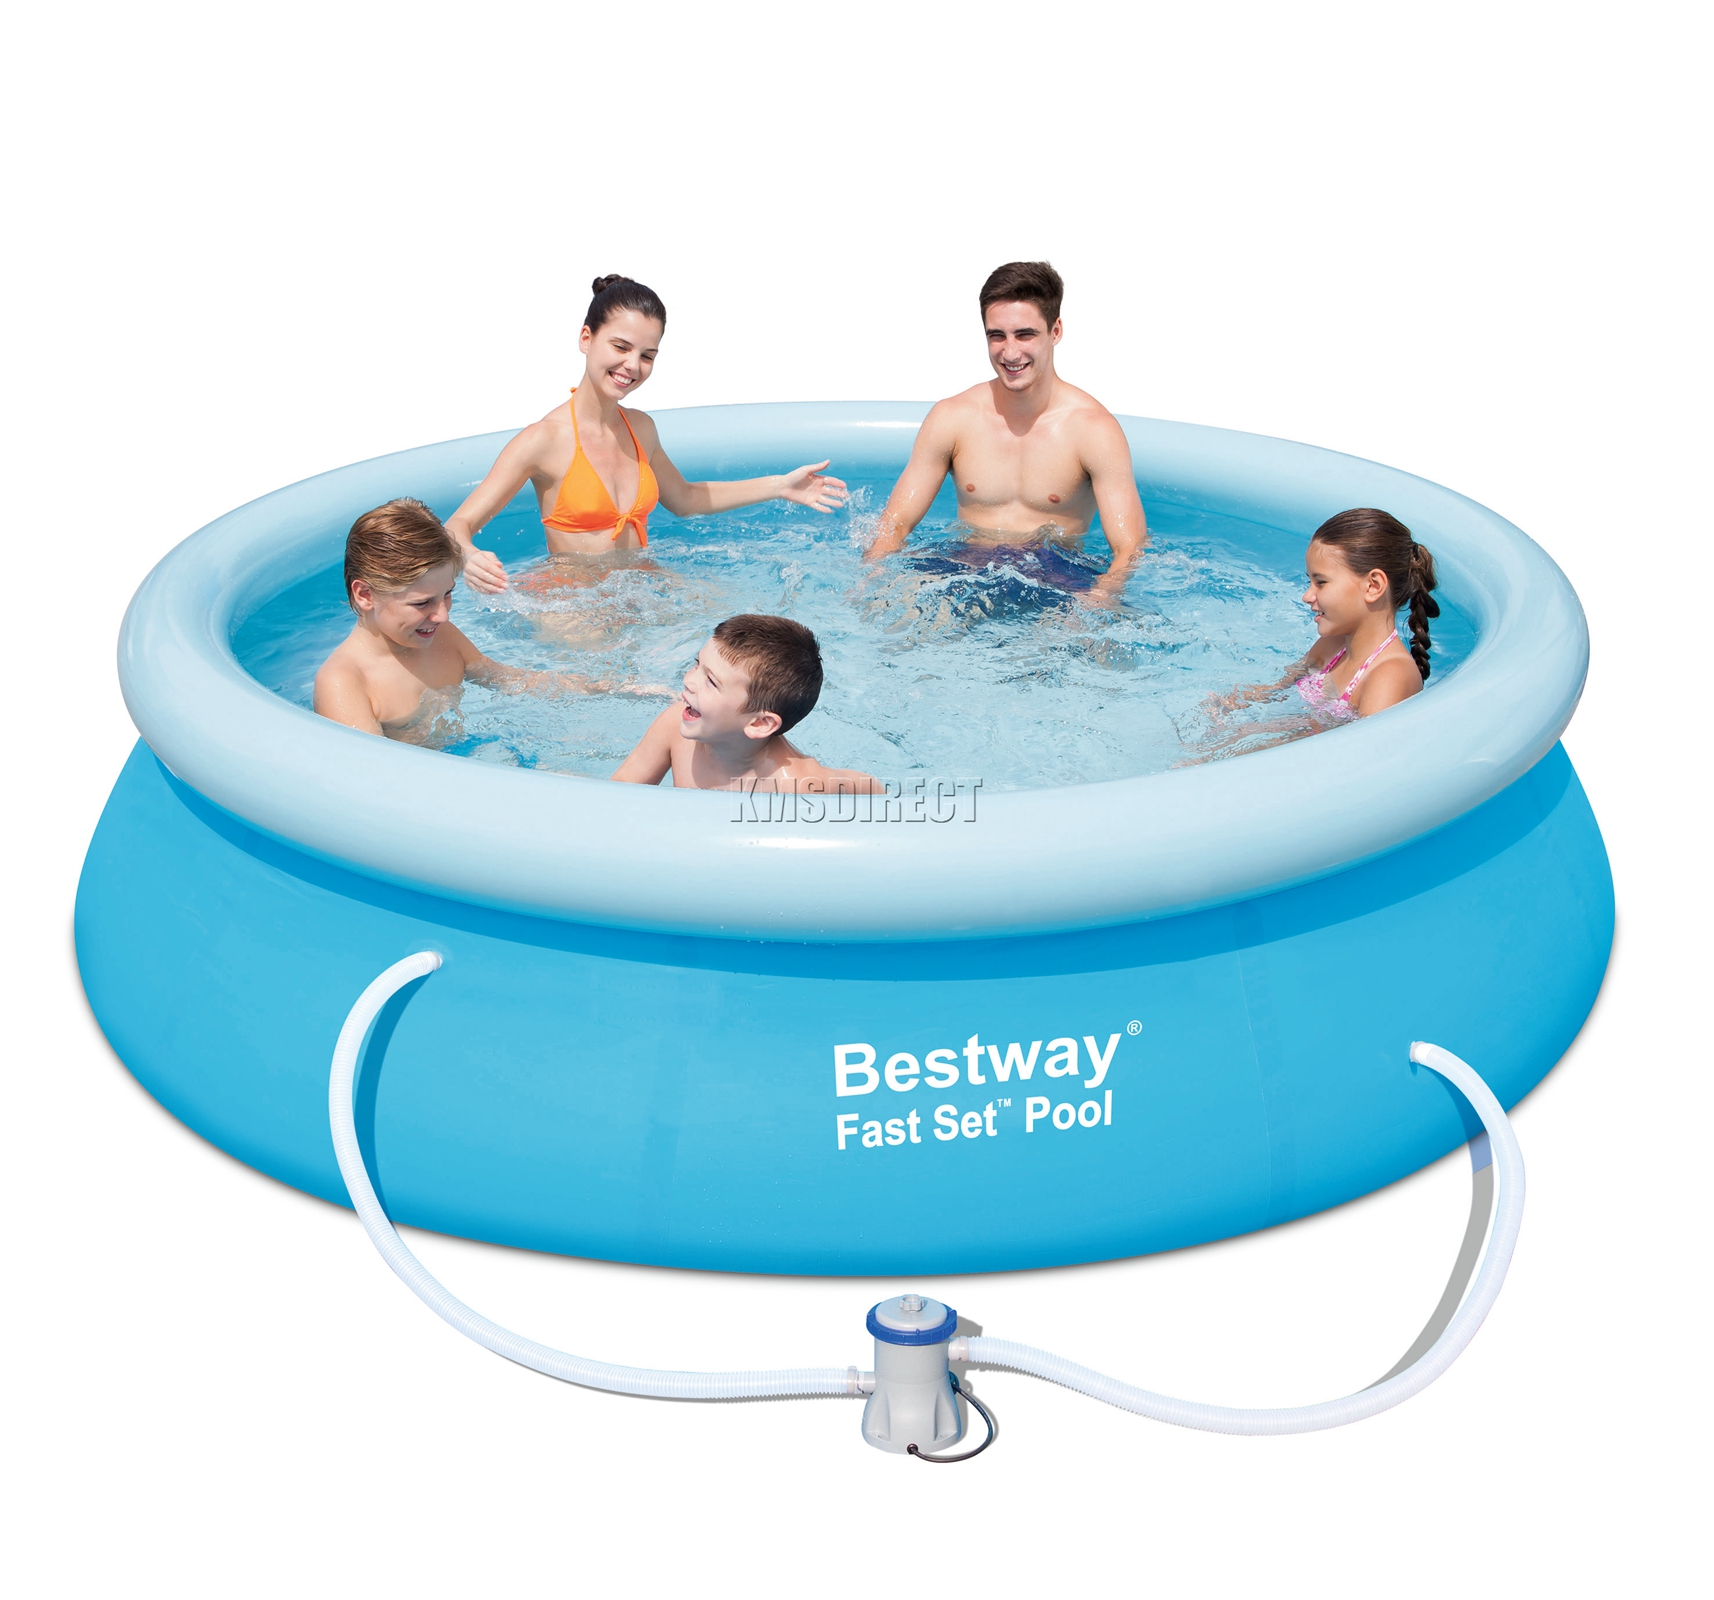 Bestway Fast Set Swimming Pool Round Inflatable 10ft X 30inch With Filter Pump Ebay